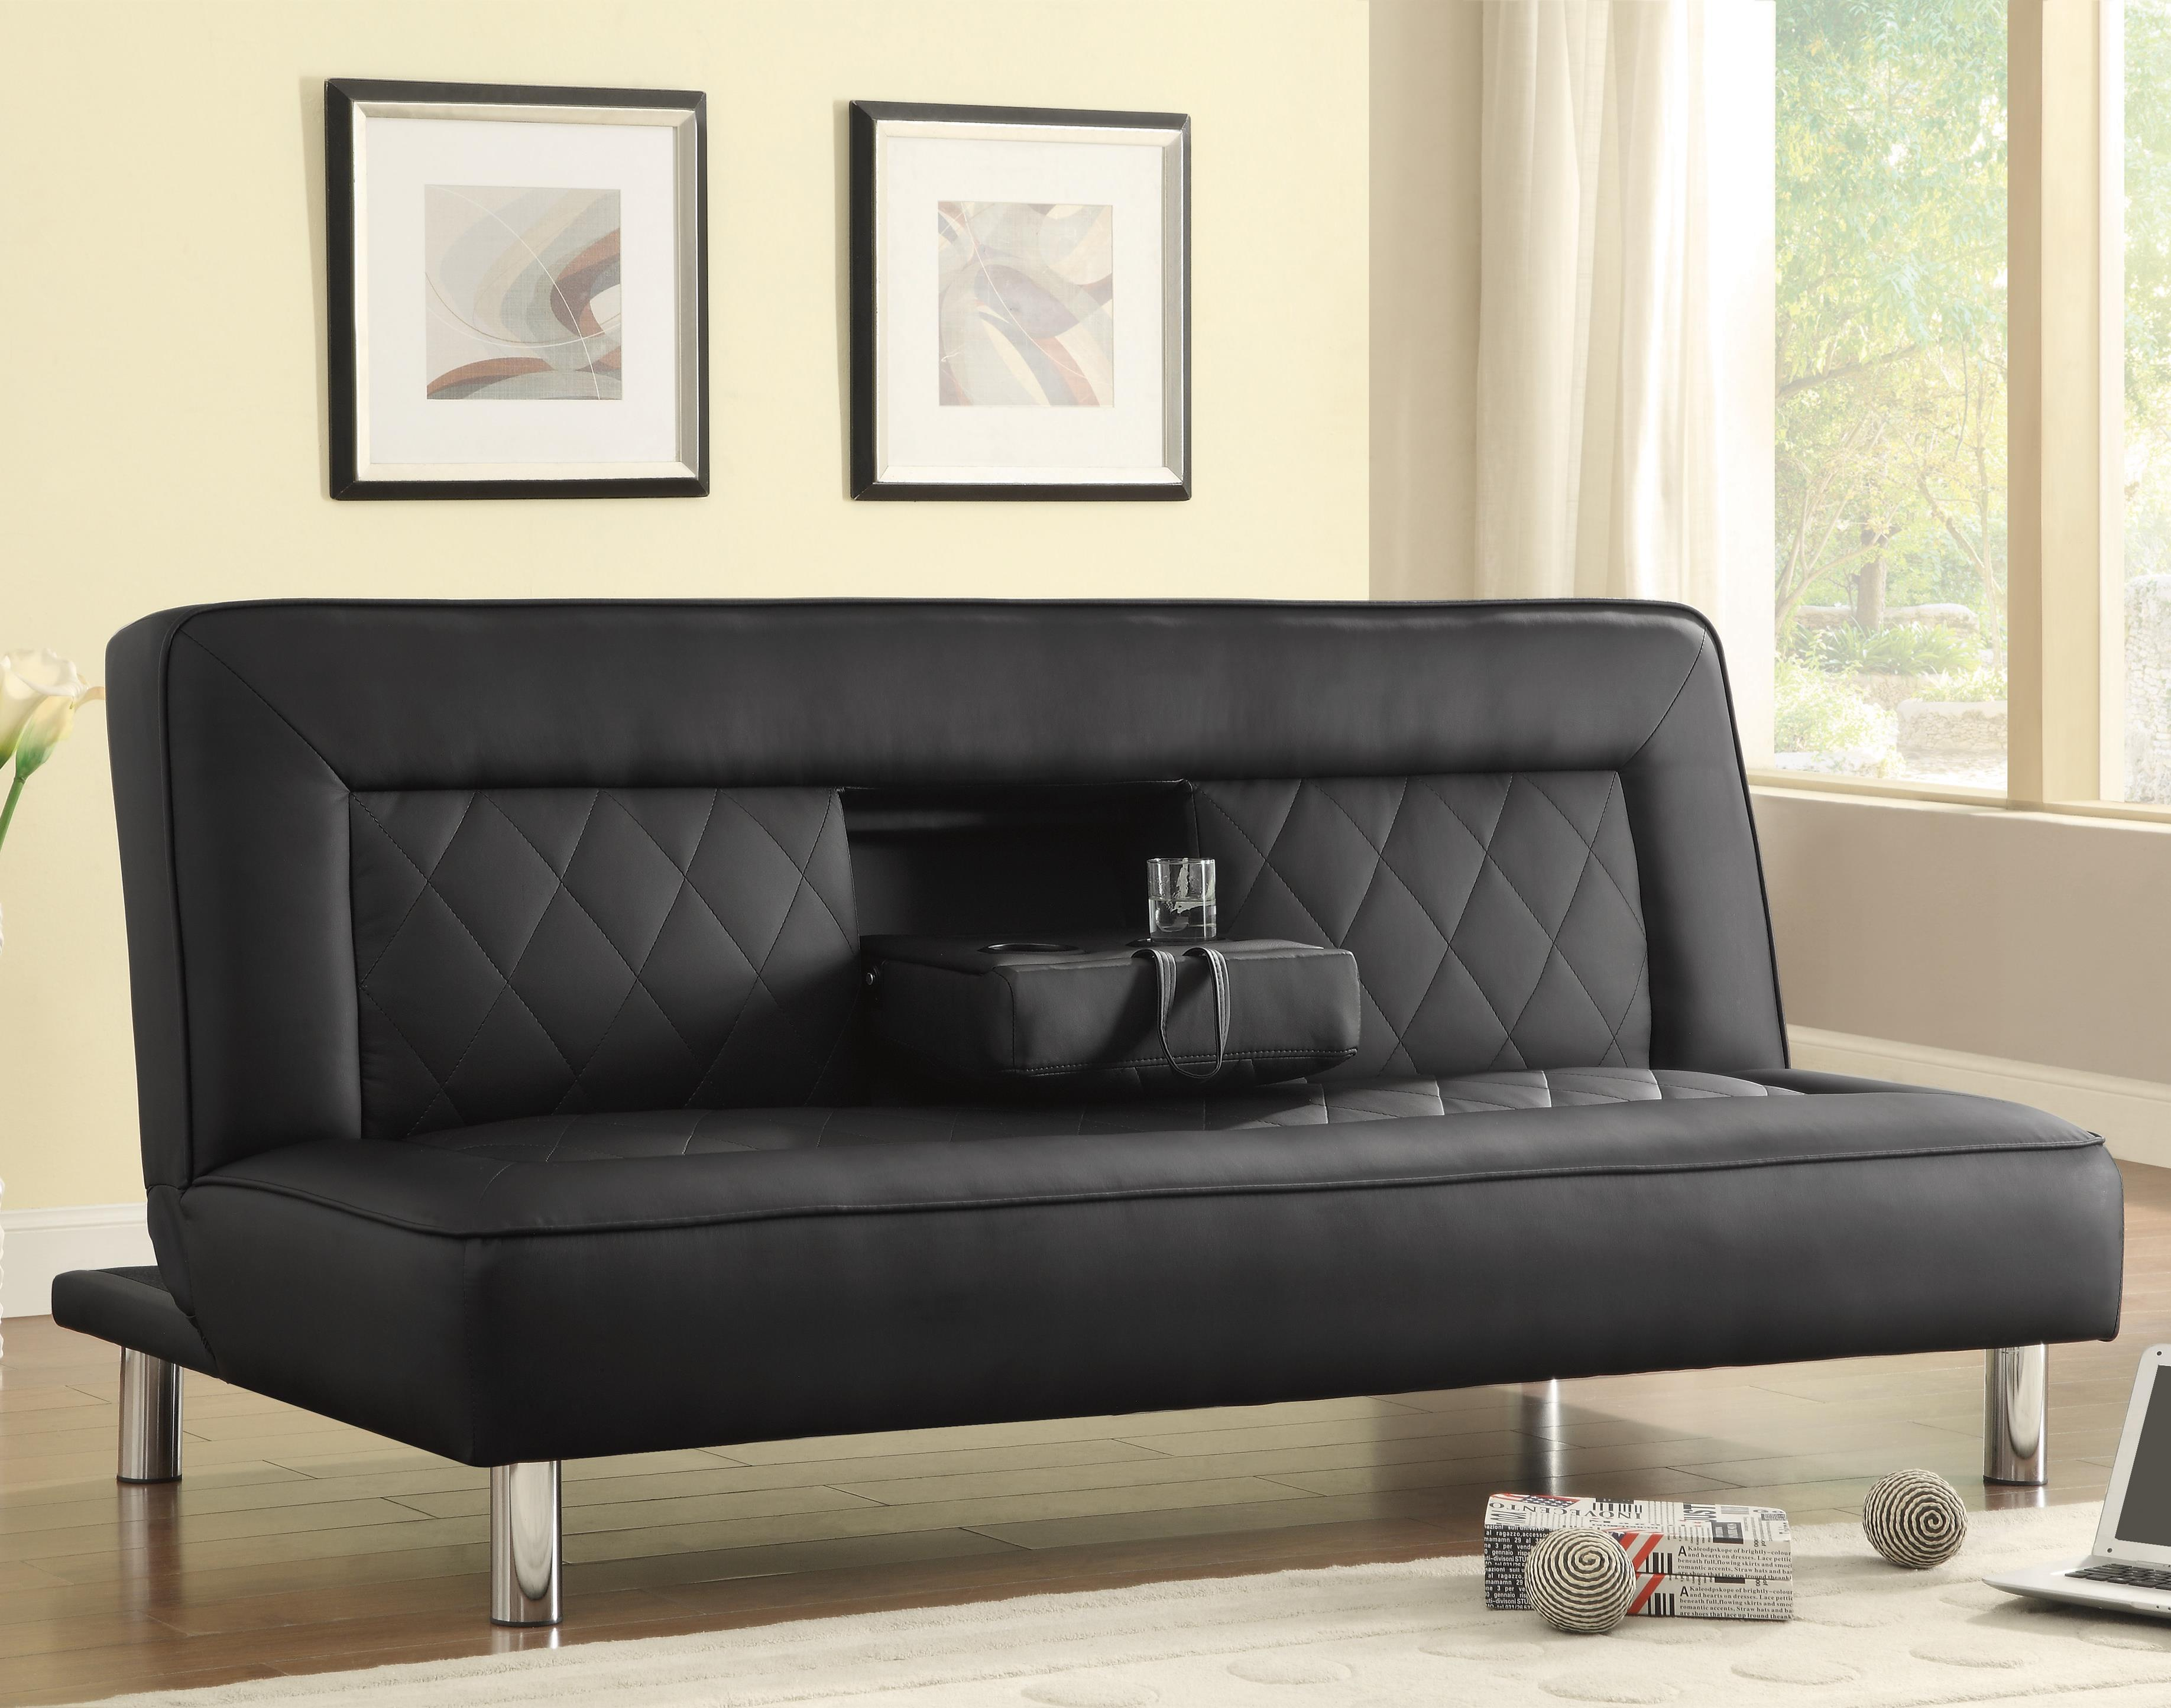 Coaster Sofa Beds and Futons Sofa Bed - Item Number: 500010